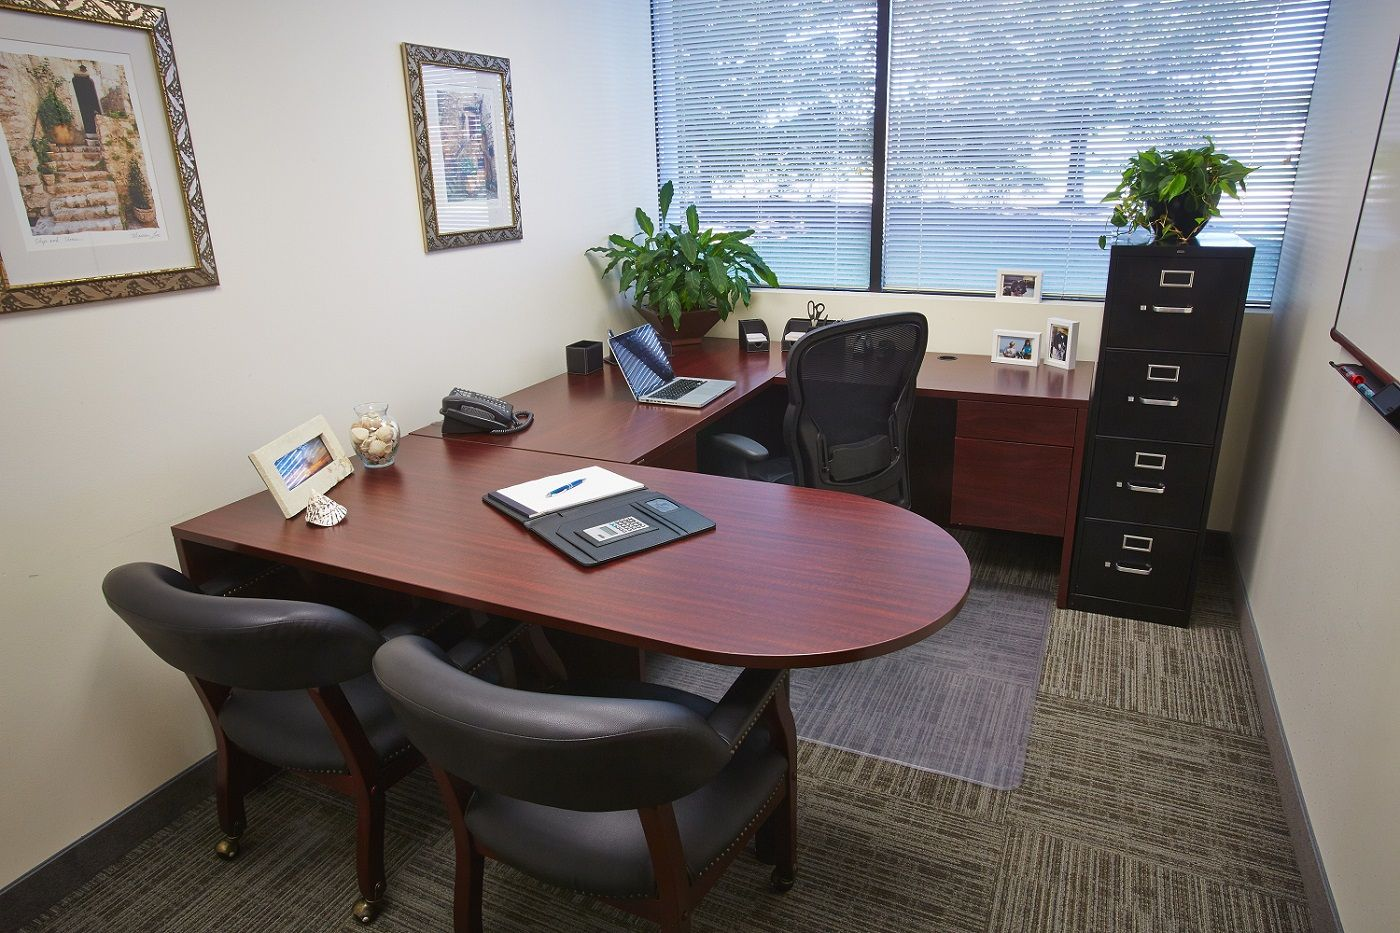 Attirant Small Executive Office Desks   Executive Home Office Furniture Check More  At Http://